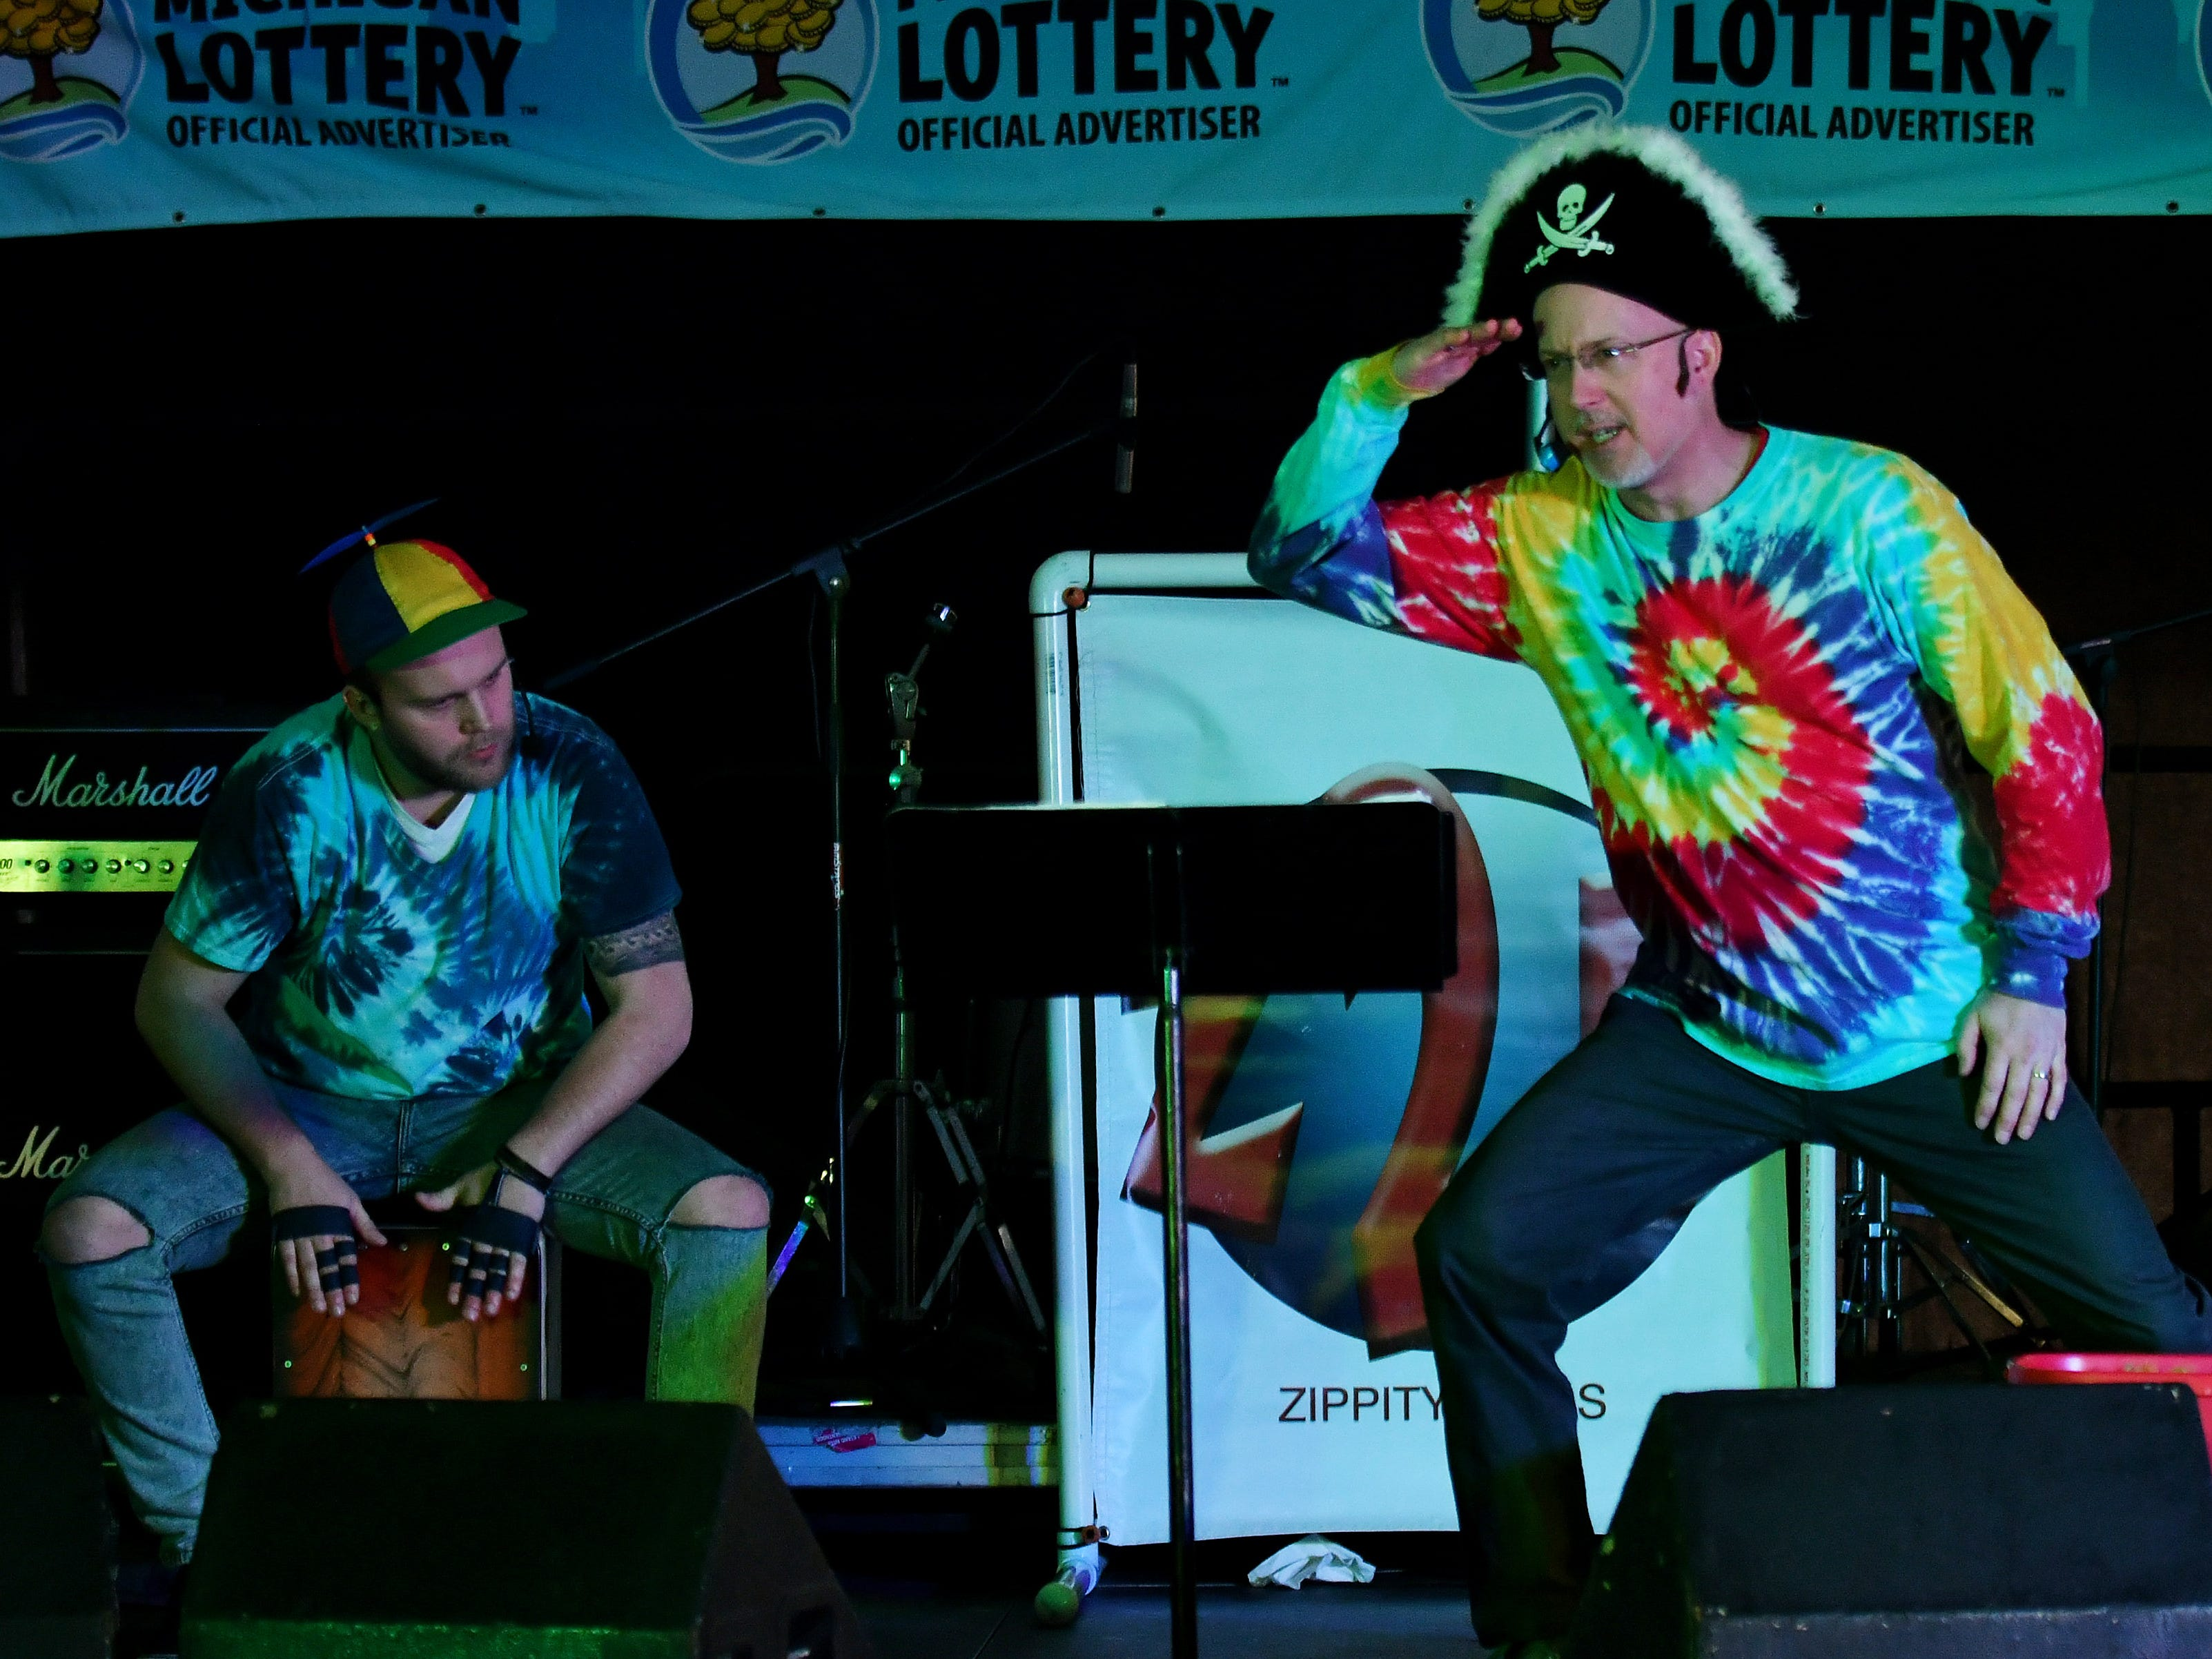 Shawn Ryskamp, 51, and his son, Austin Ryskamp, 26, left, both of Oxford, perform as Zippity 2 Dads on the Kids Stage.